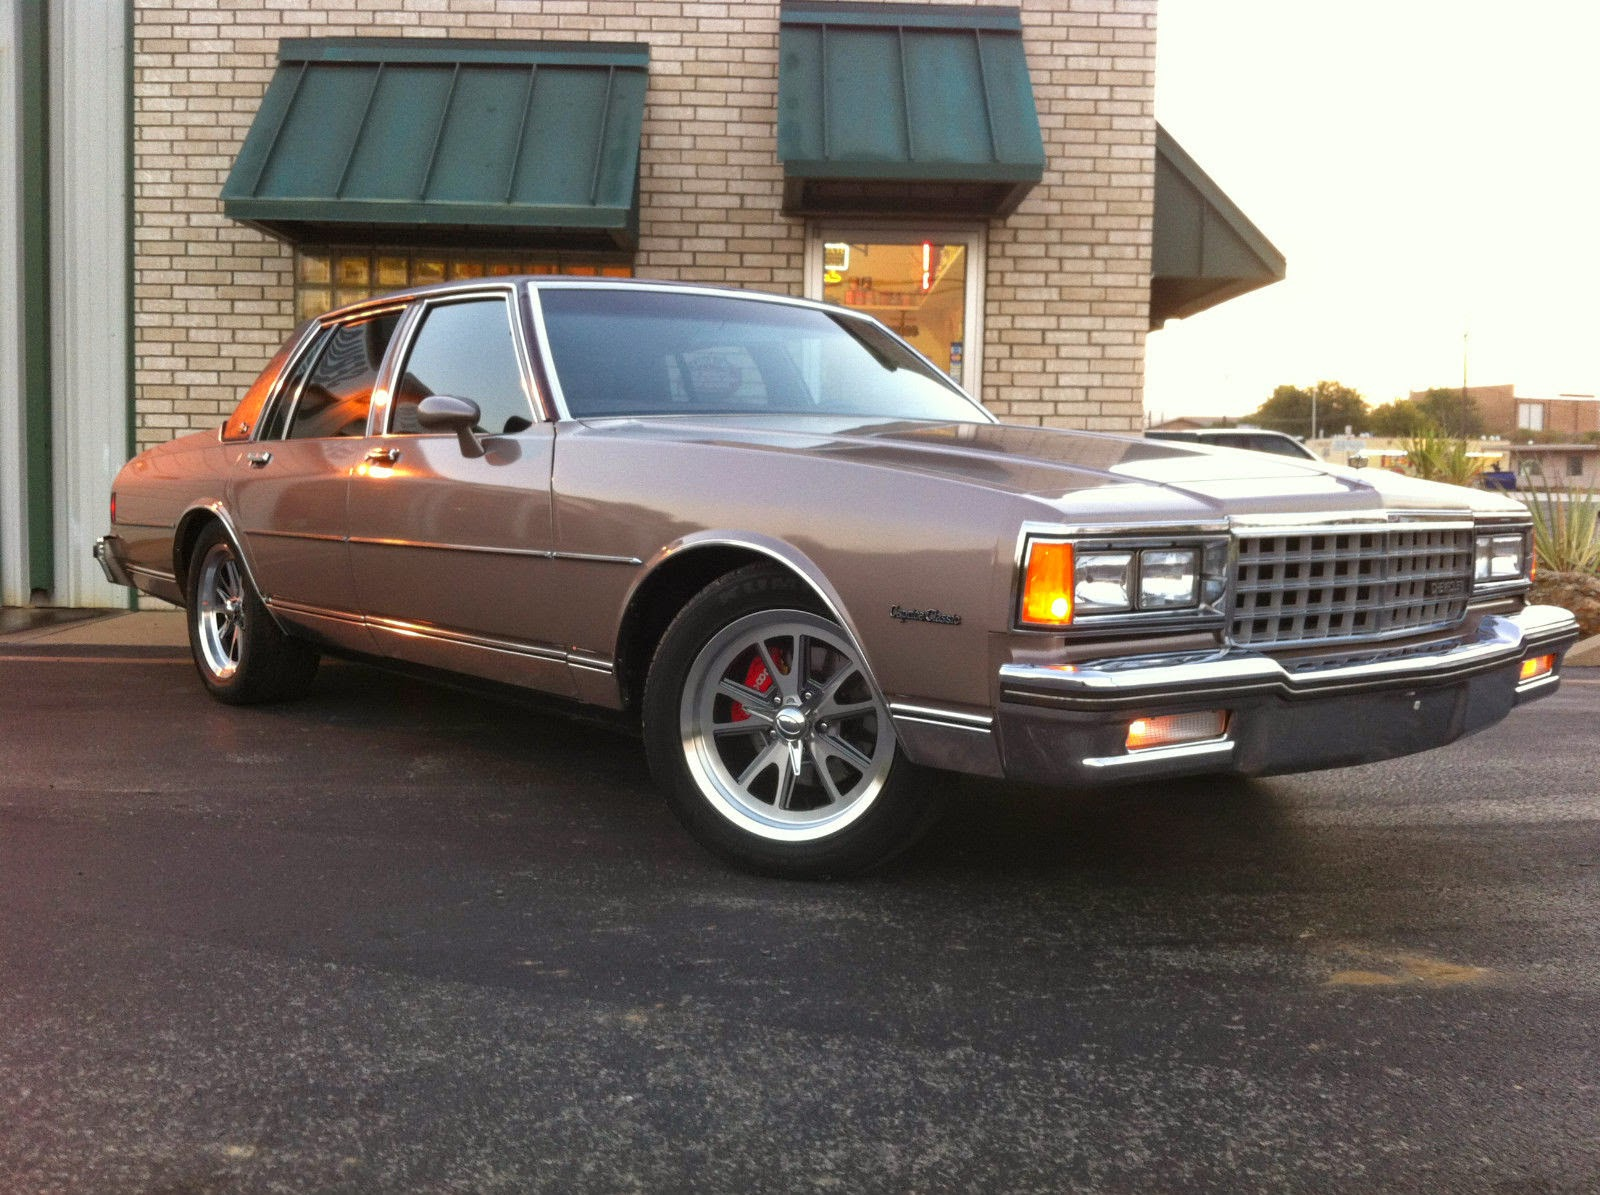 All Chevy chevy caprice 1985 : Daily Turismo: 10k: Hot Rod: 1984 Chevrolet Caprice